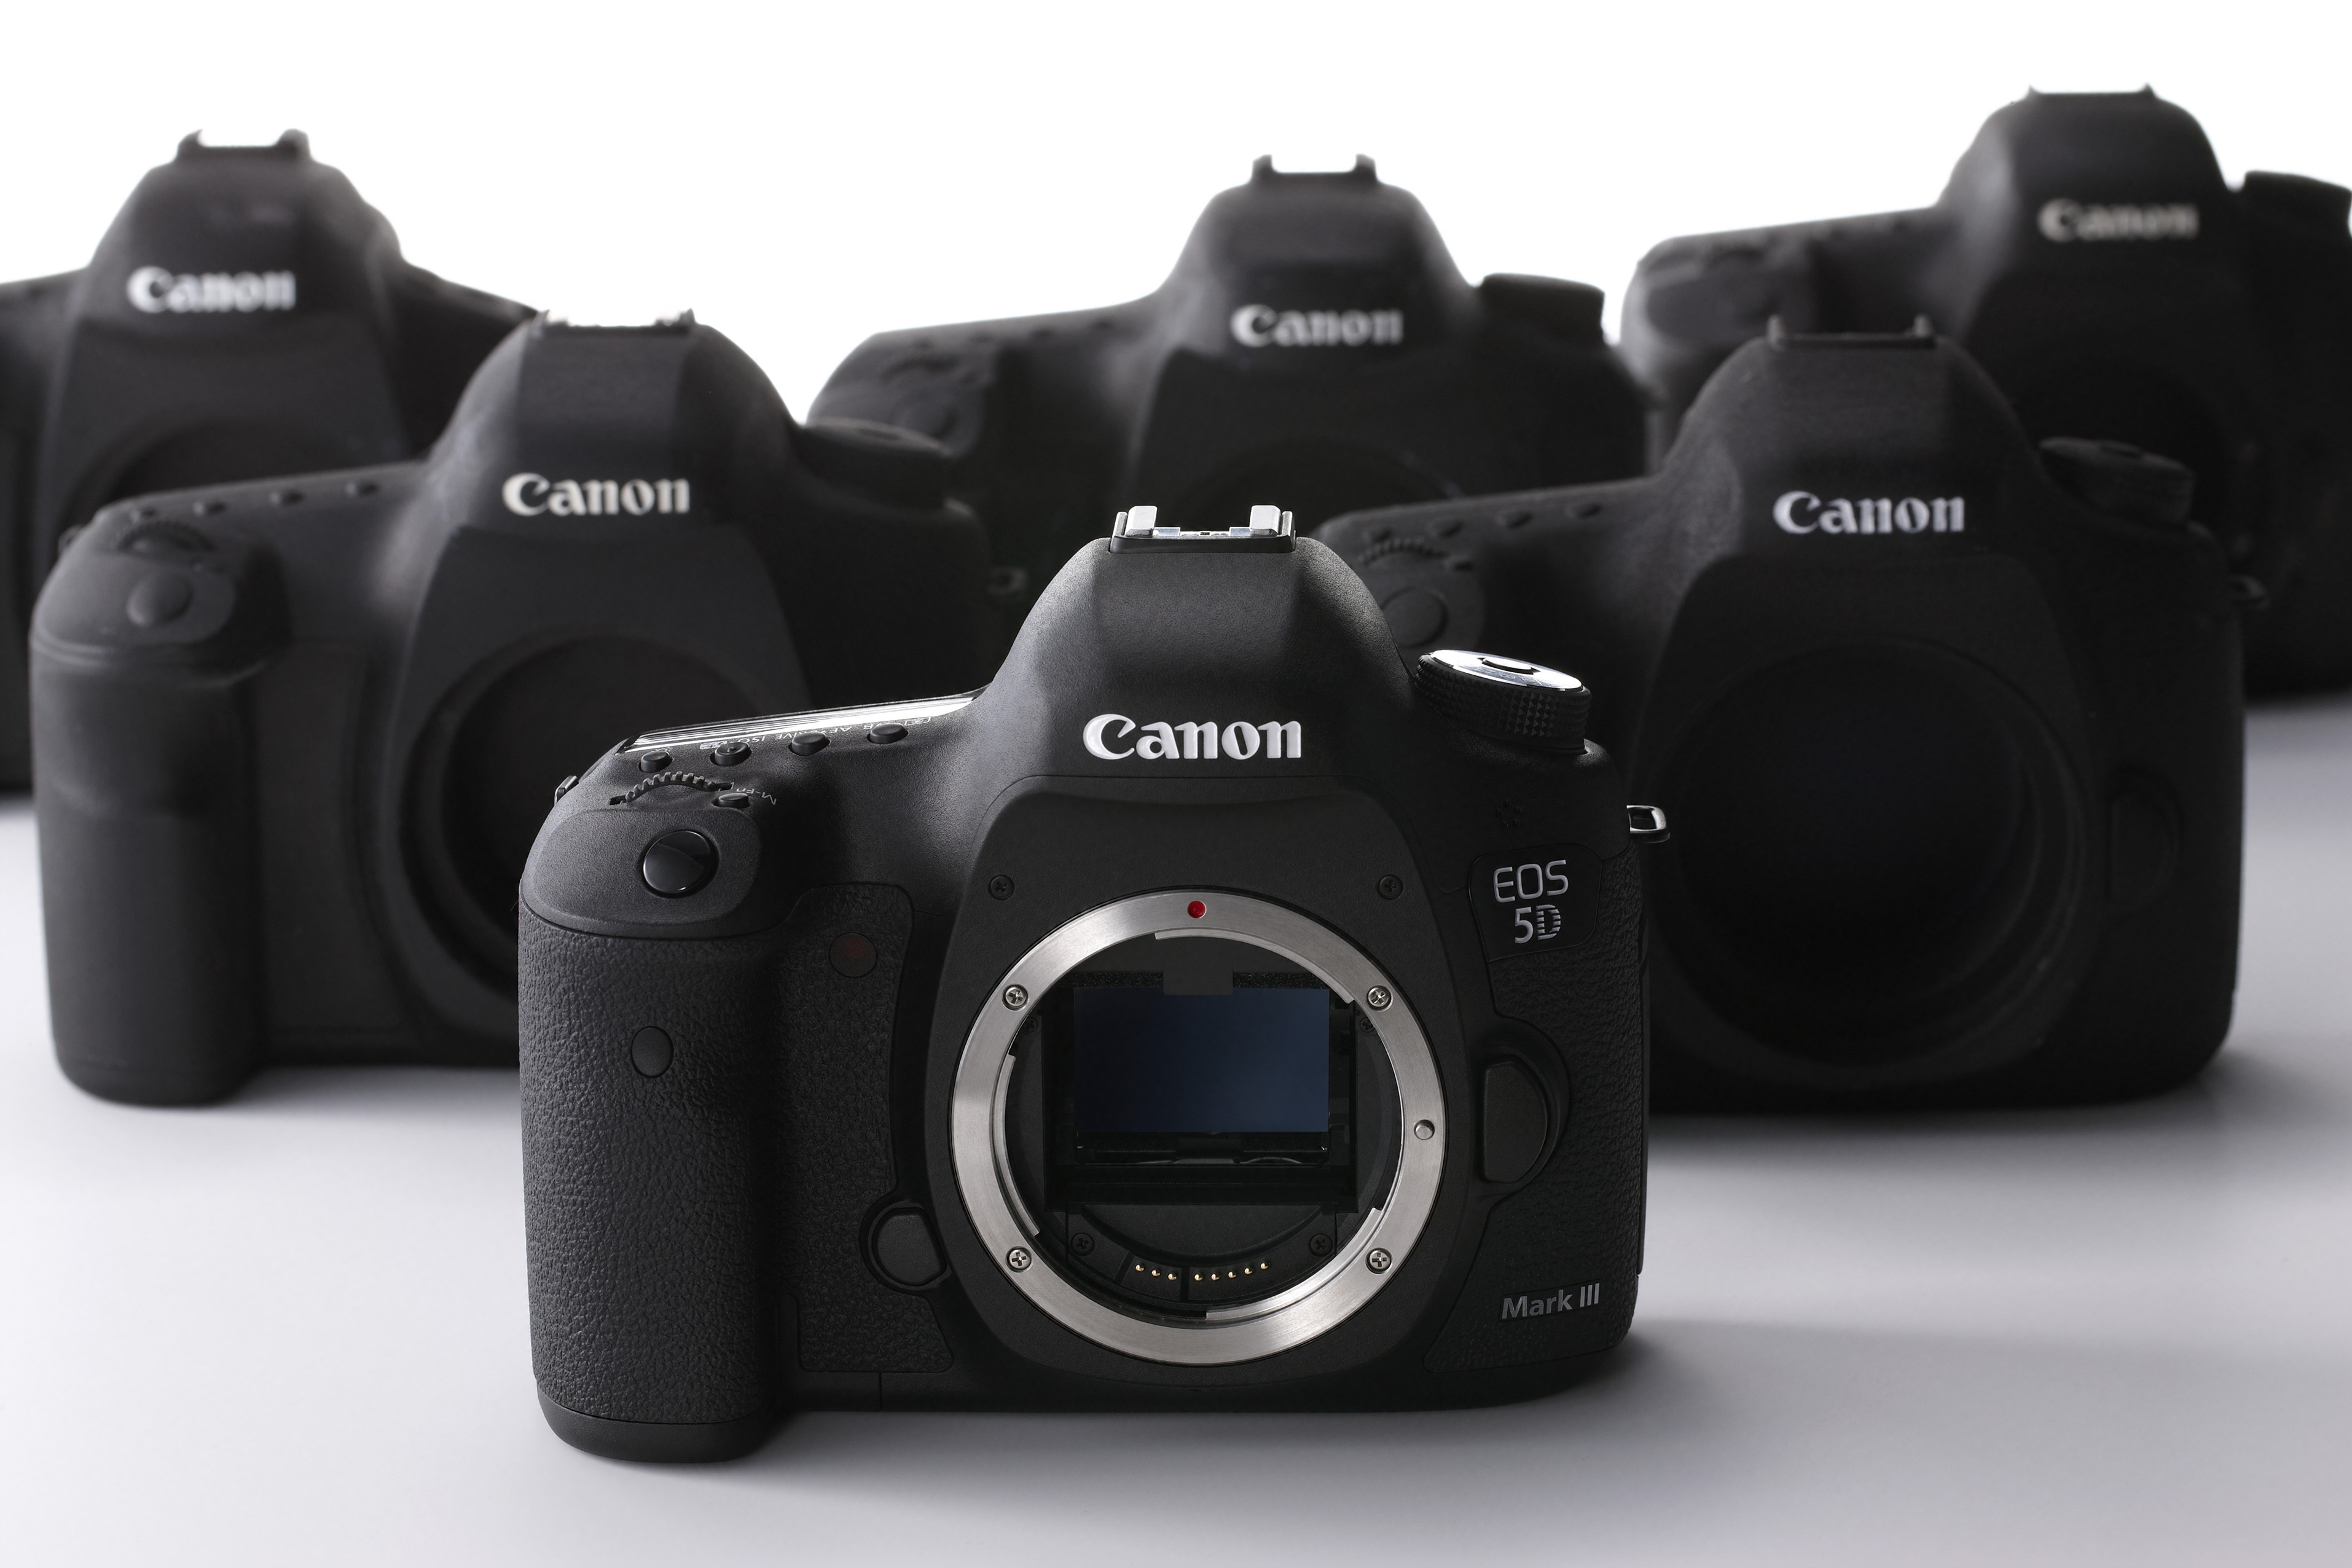 Neue Firmwareversion 1.1.3. für Canon 5D Mark III